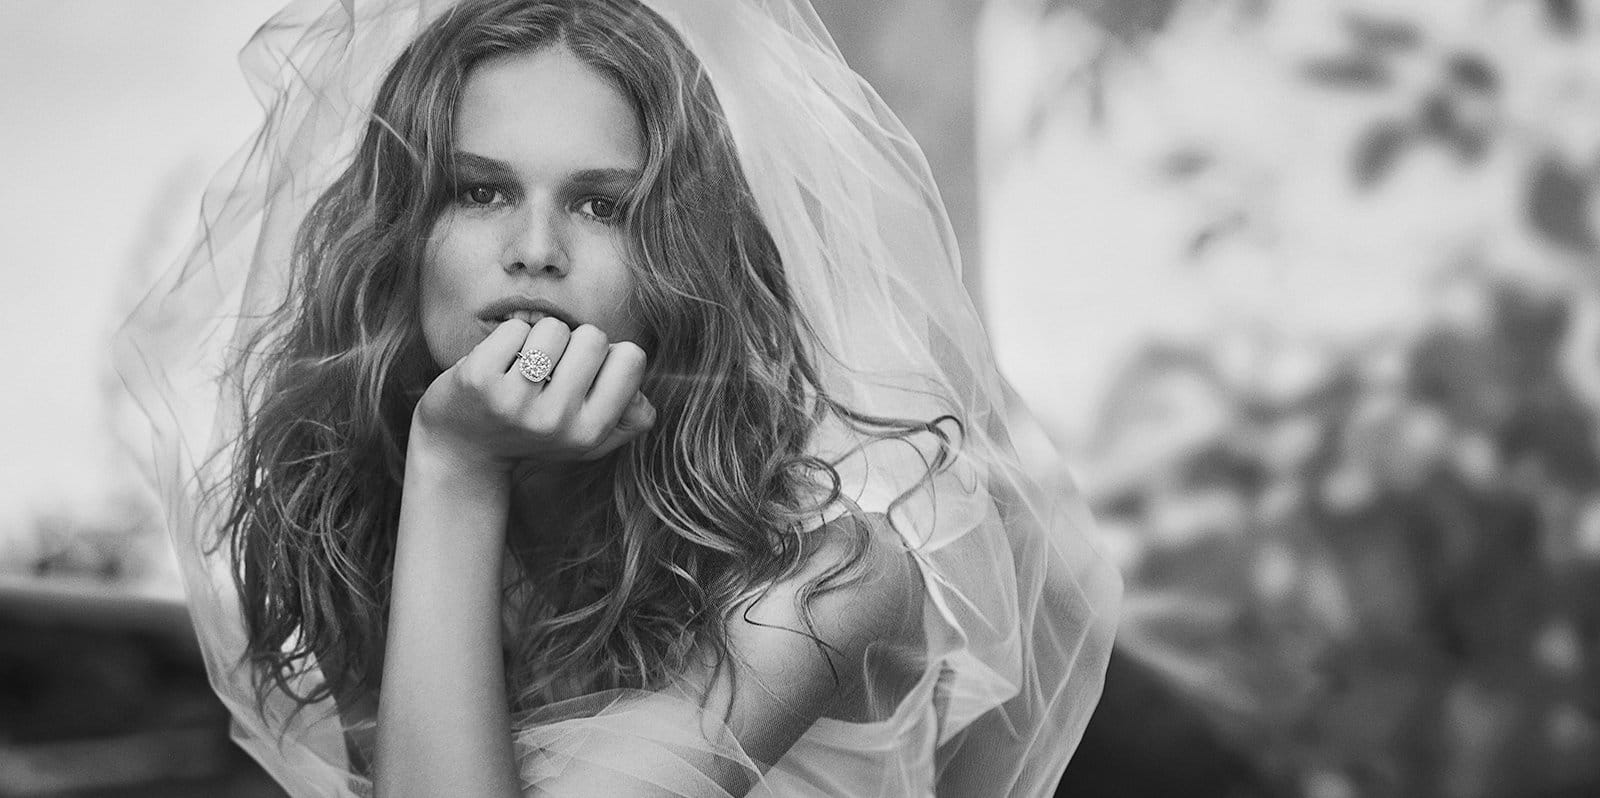 A black-and-white photo of model Anna Ewers wearing a white veil and a DY Capri engagement ring in platinum with diamonds.